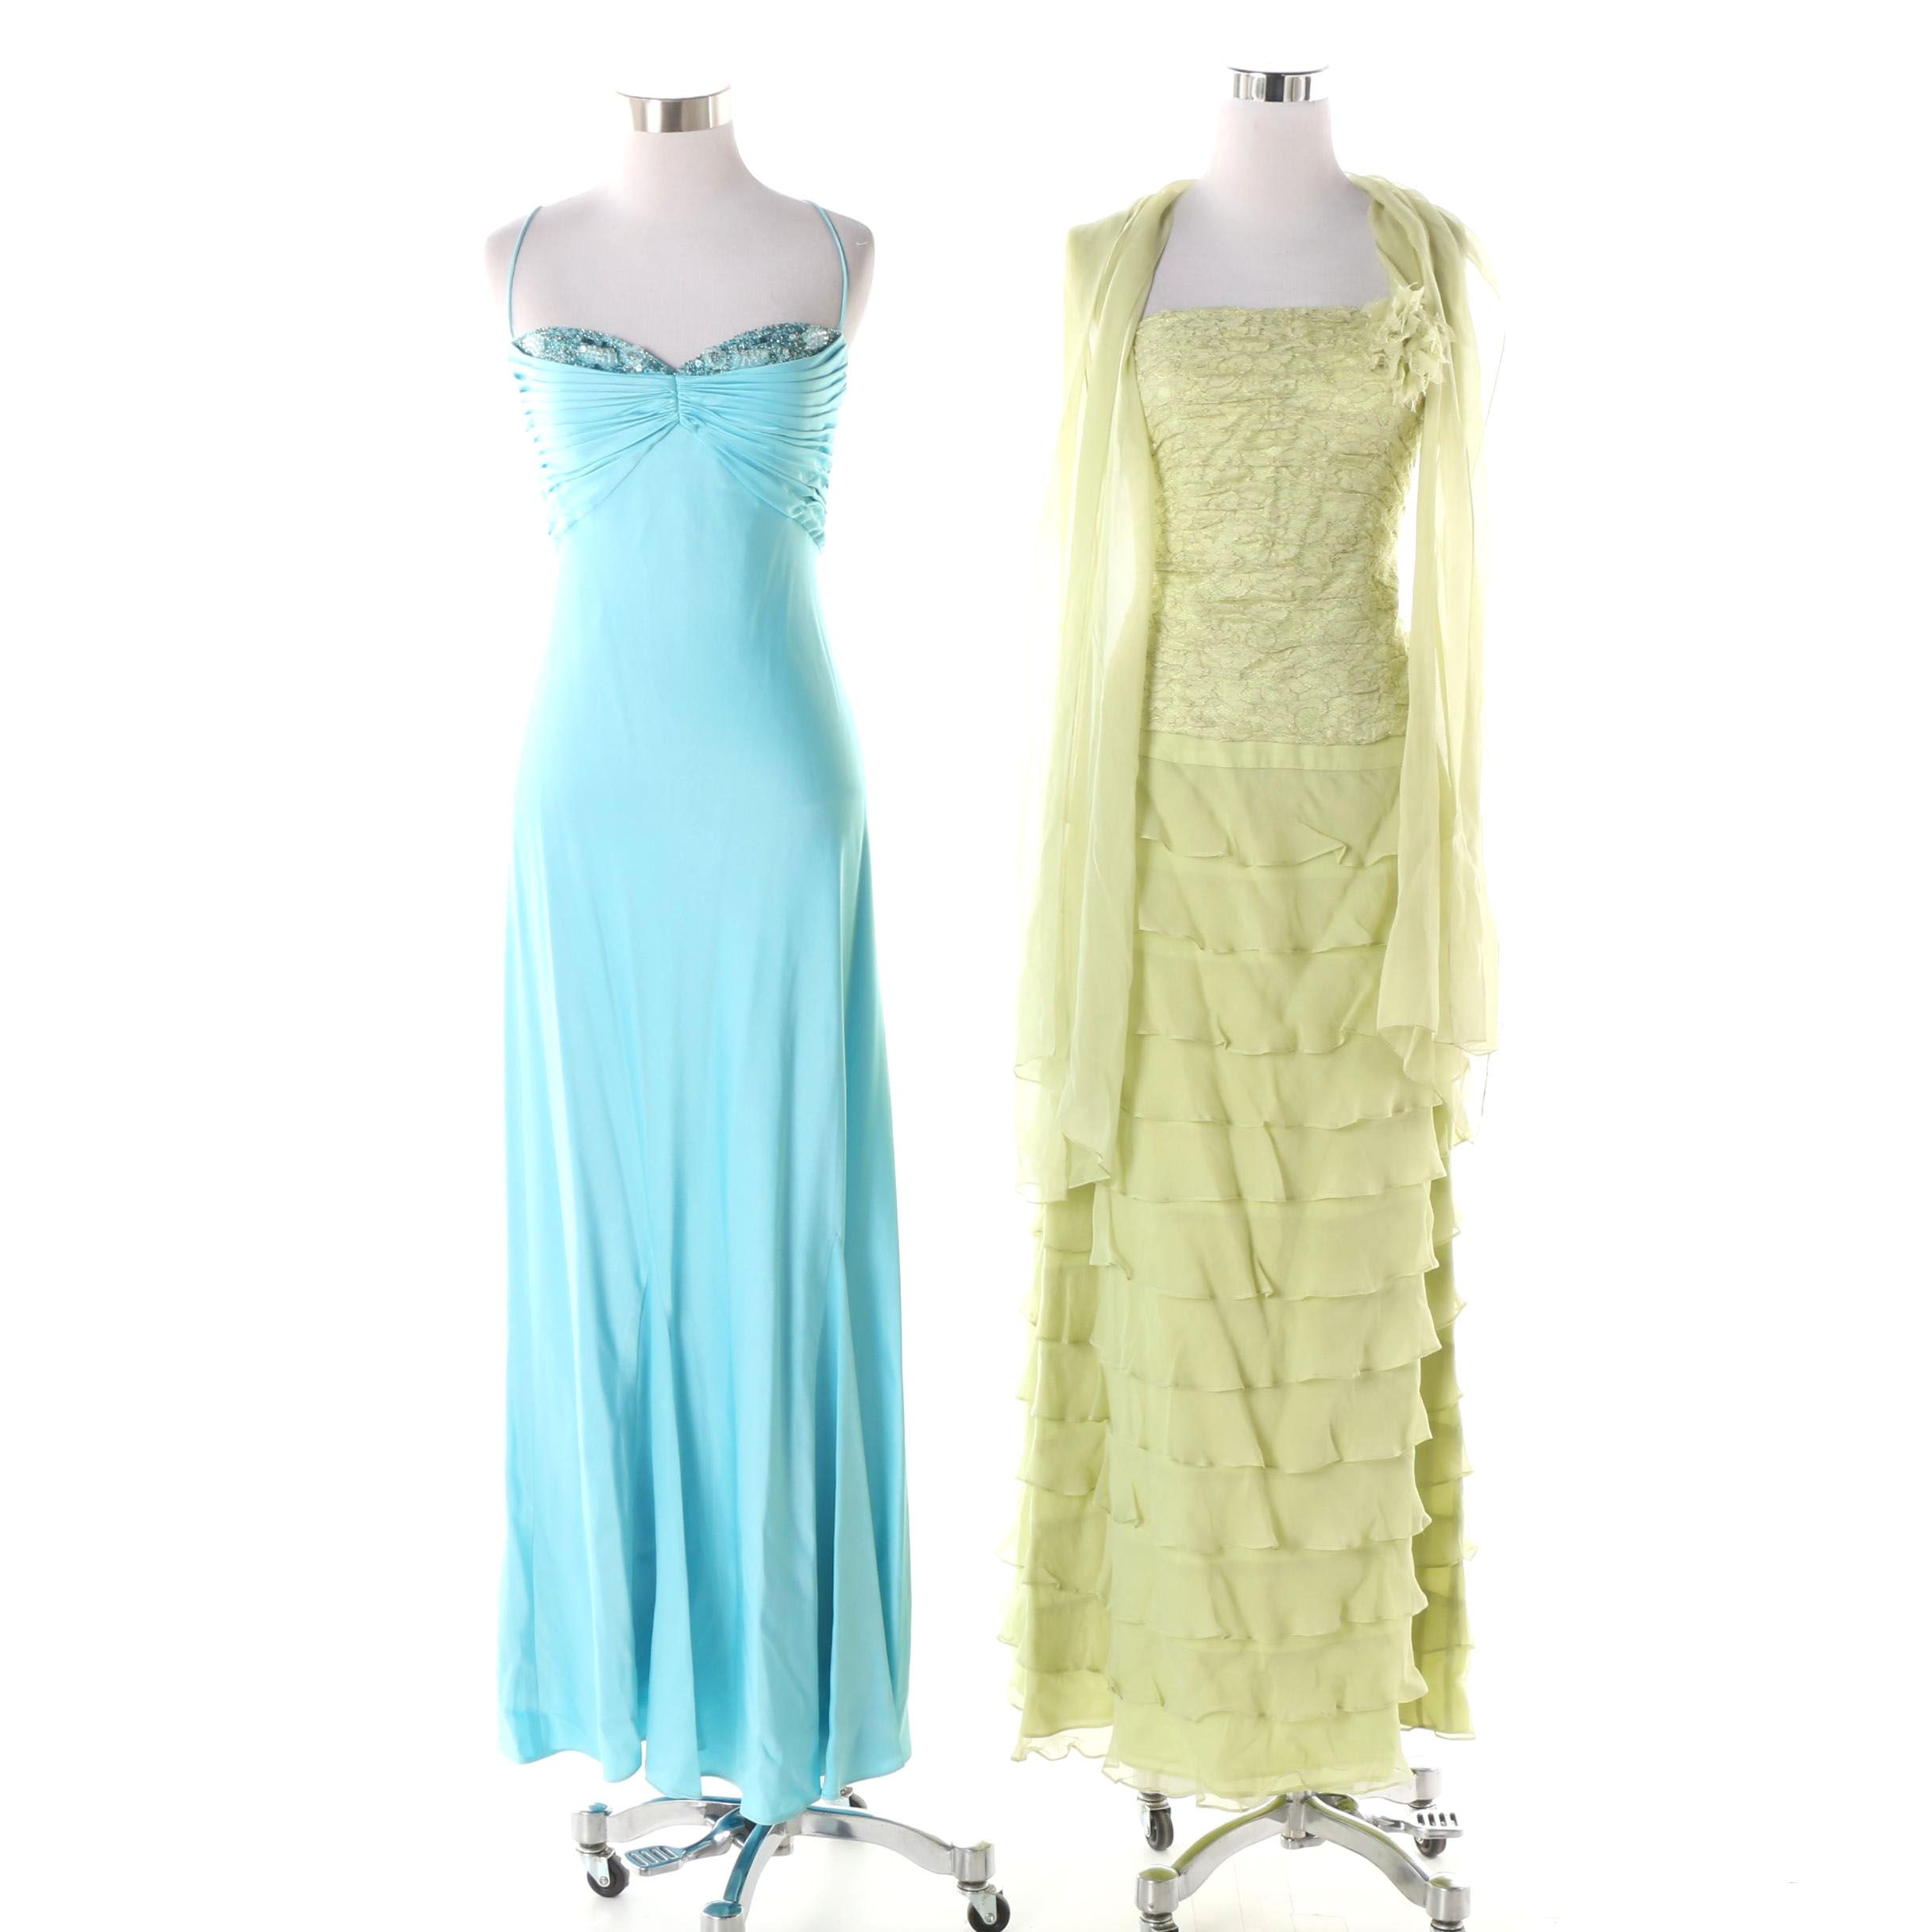 Lillie Rubin Green Strapless Dress and Wrap and Blue Spaghetti Strap Maxi Dress